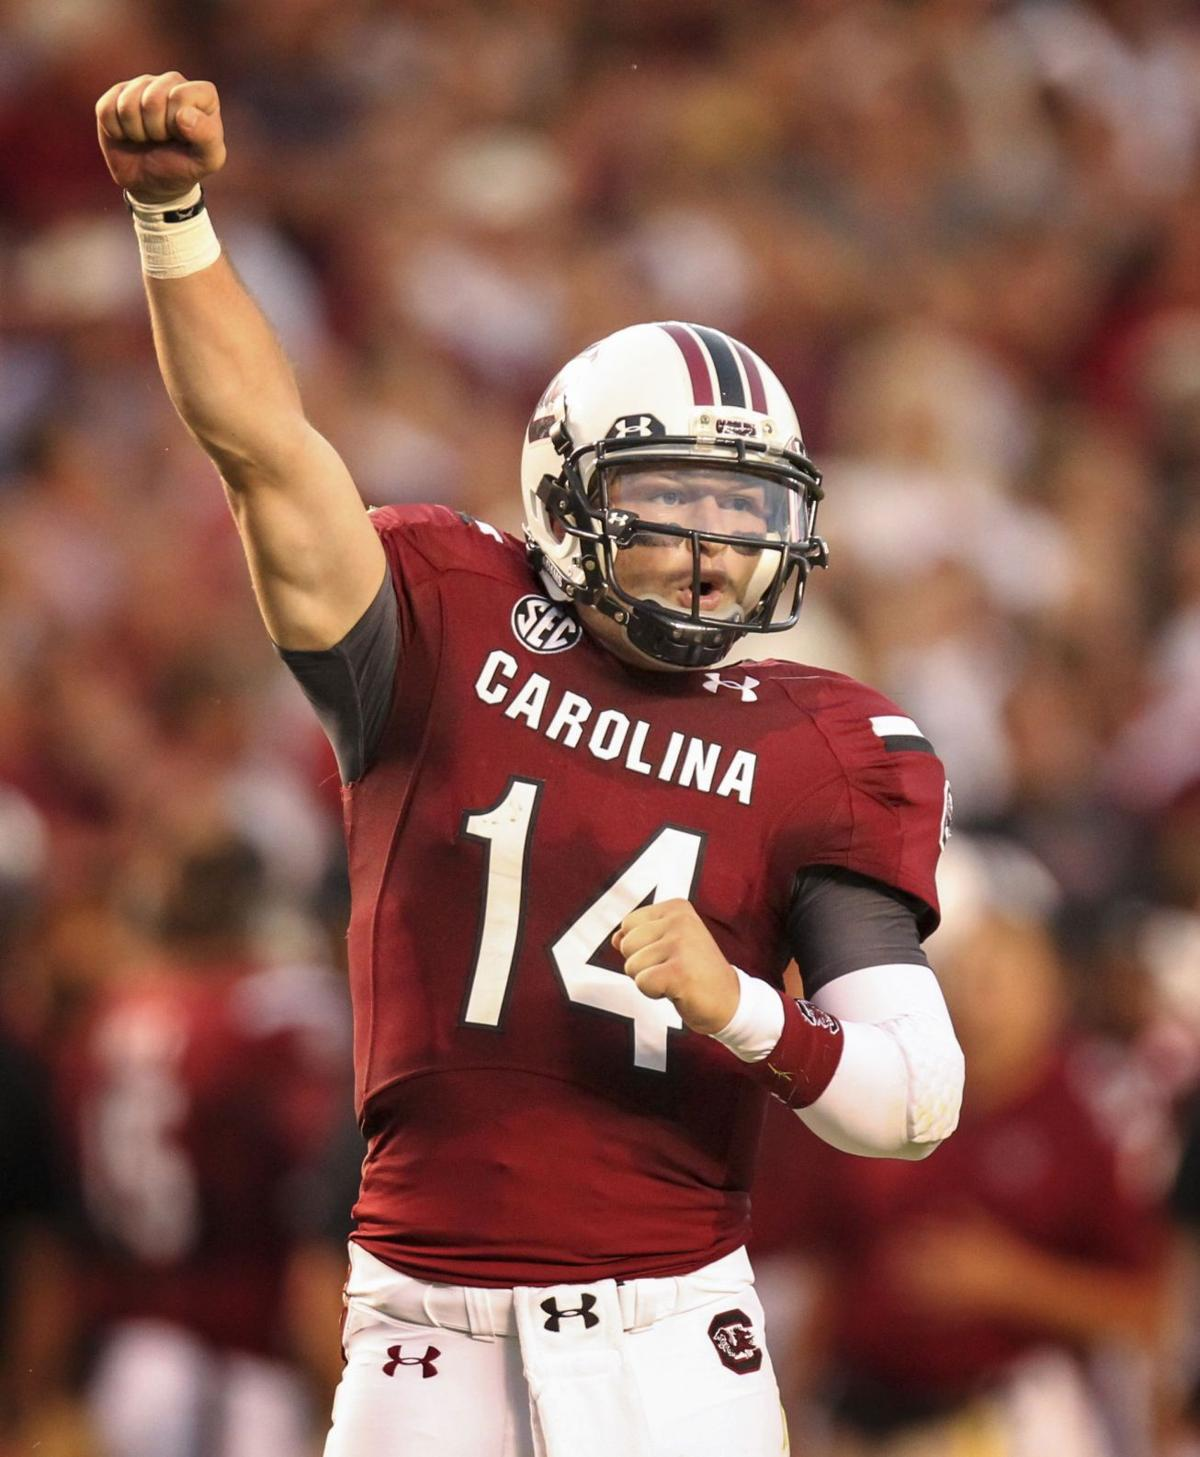 Inside the Game: Mississippi State at No. 14 South Carolina